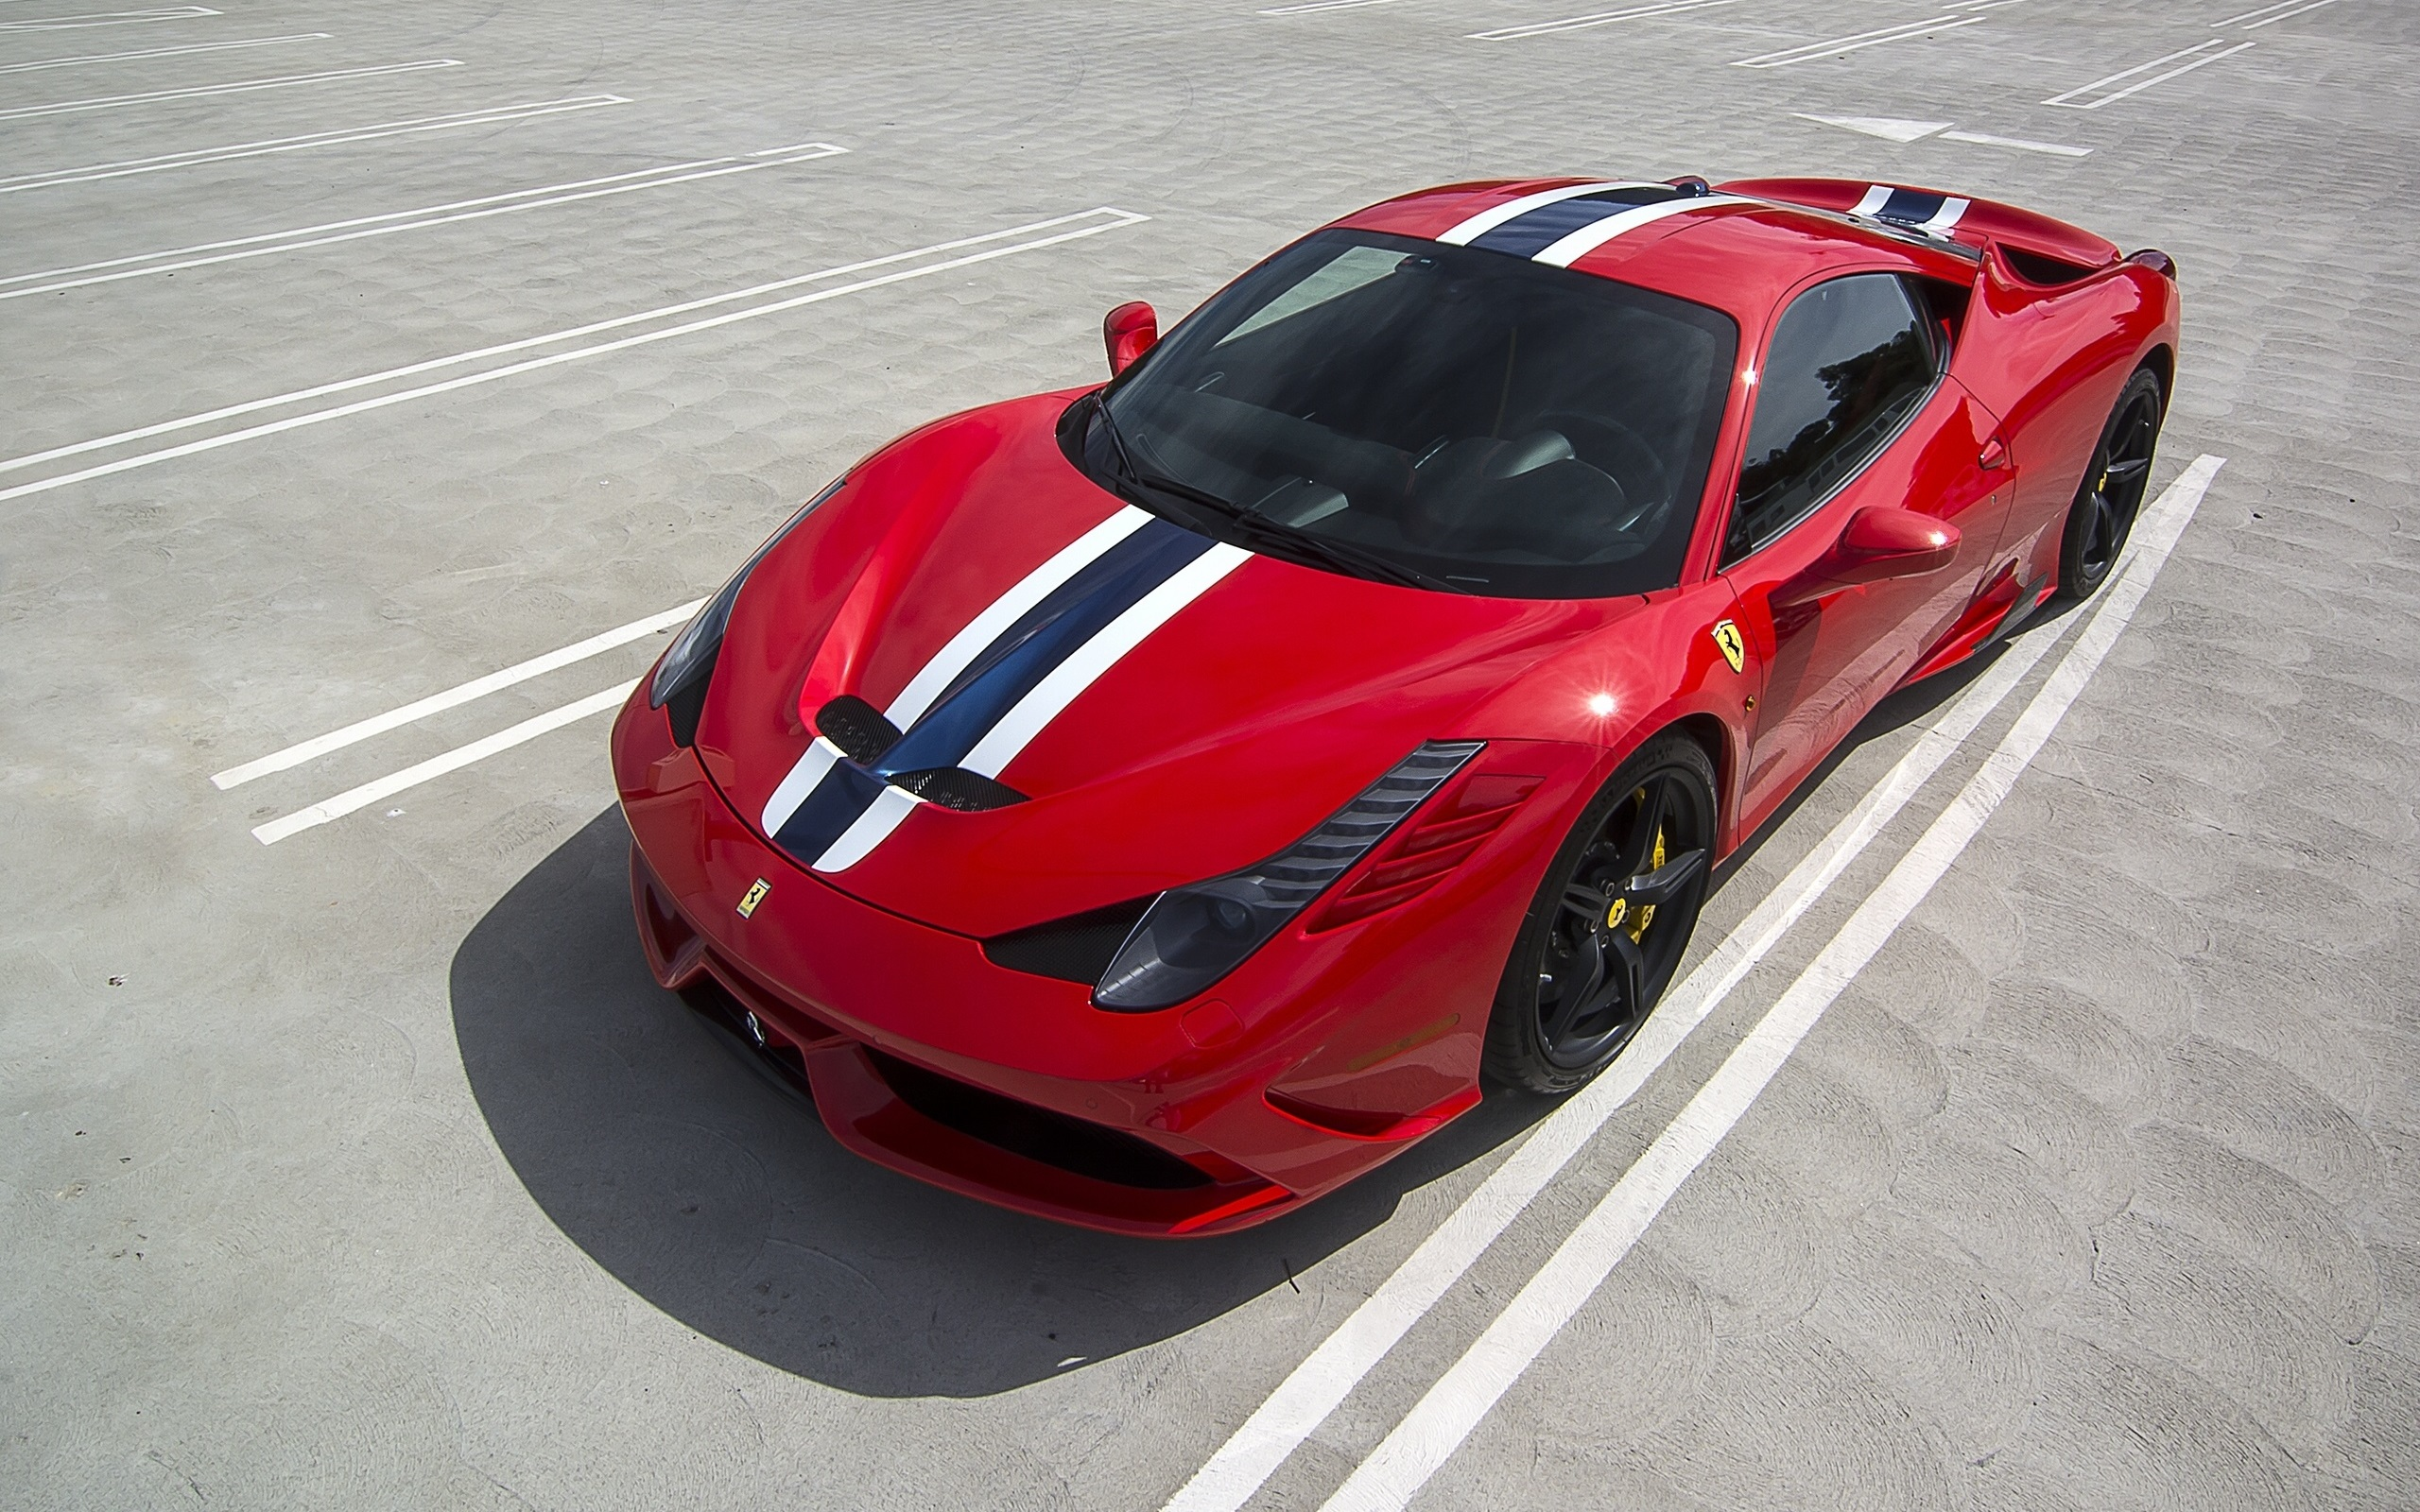 Wallpaper Ferrari 458 Speciale Red Sportscar Top View 2560x1600 Hd Picture Image